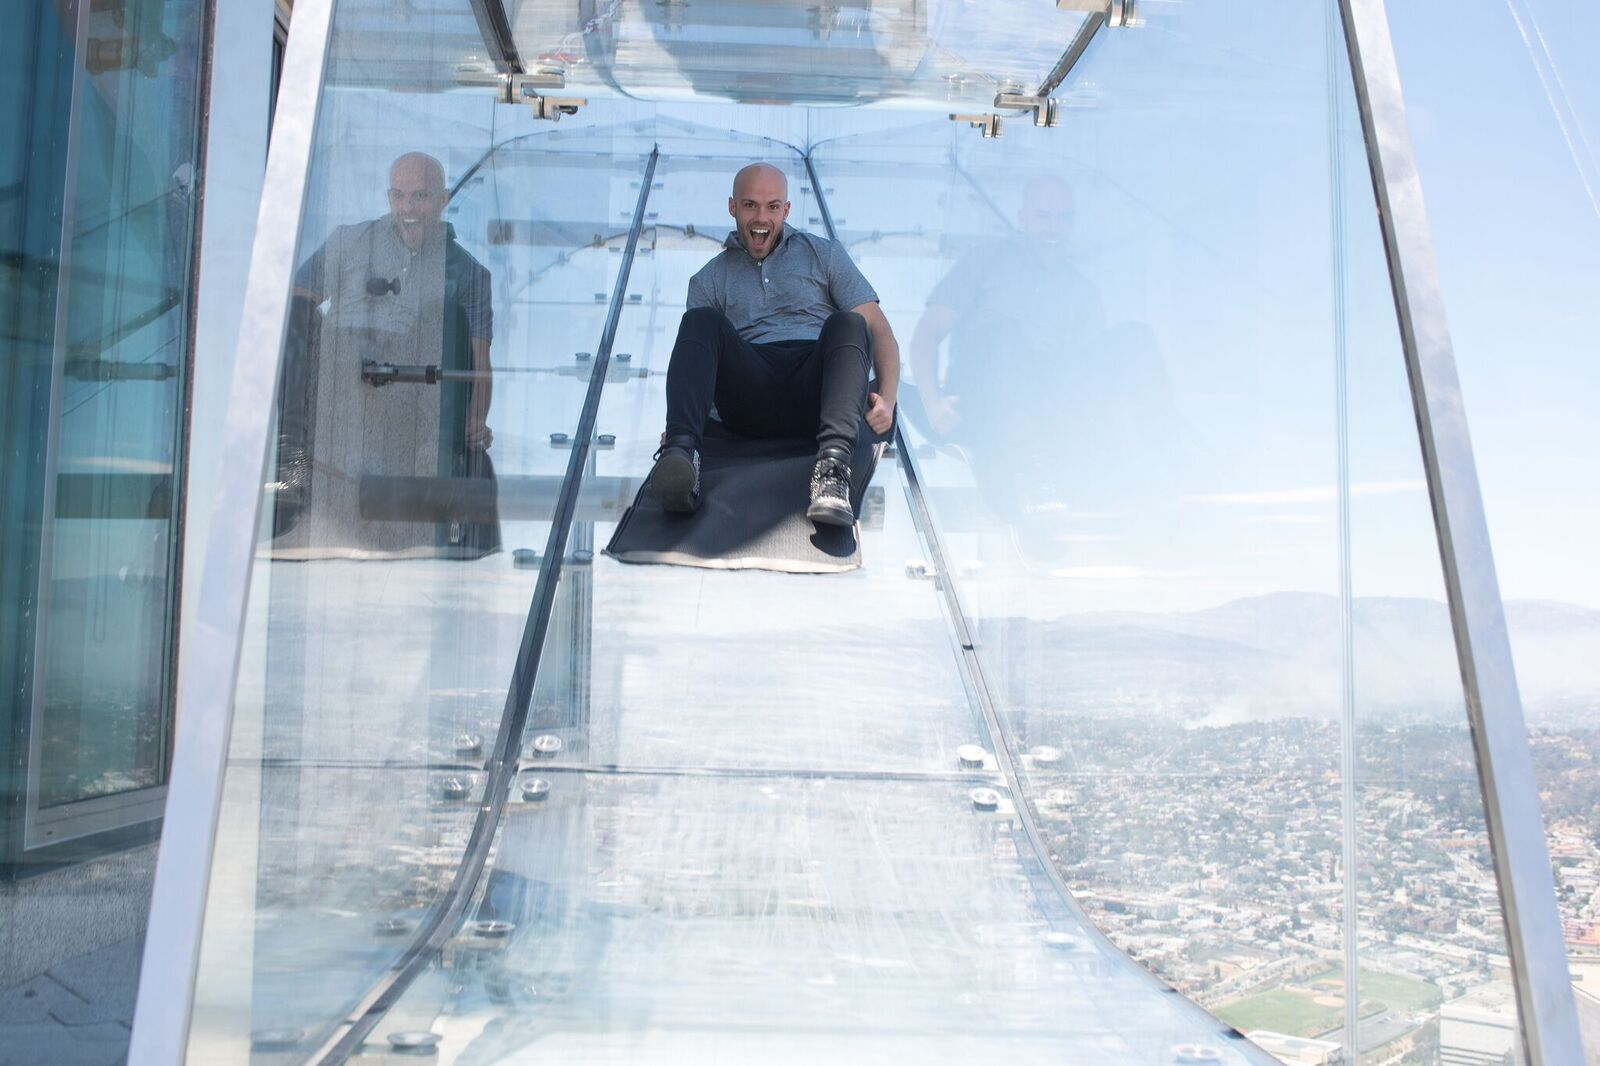 USA California Los Angeles Skyslide